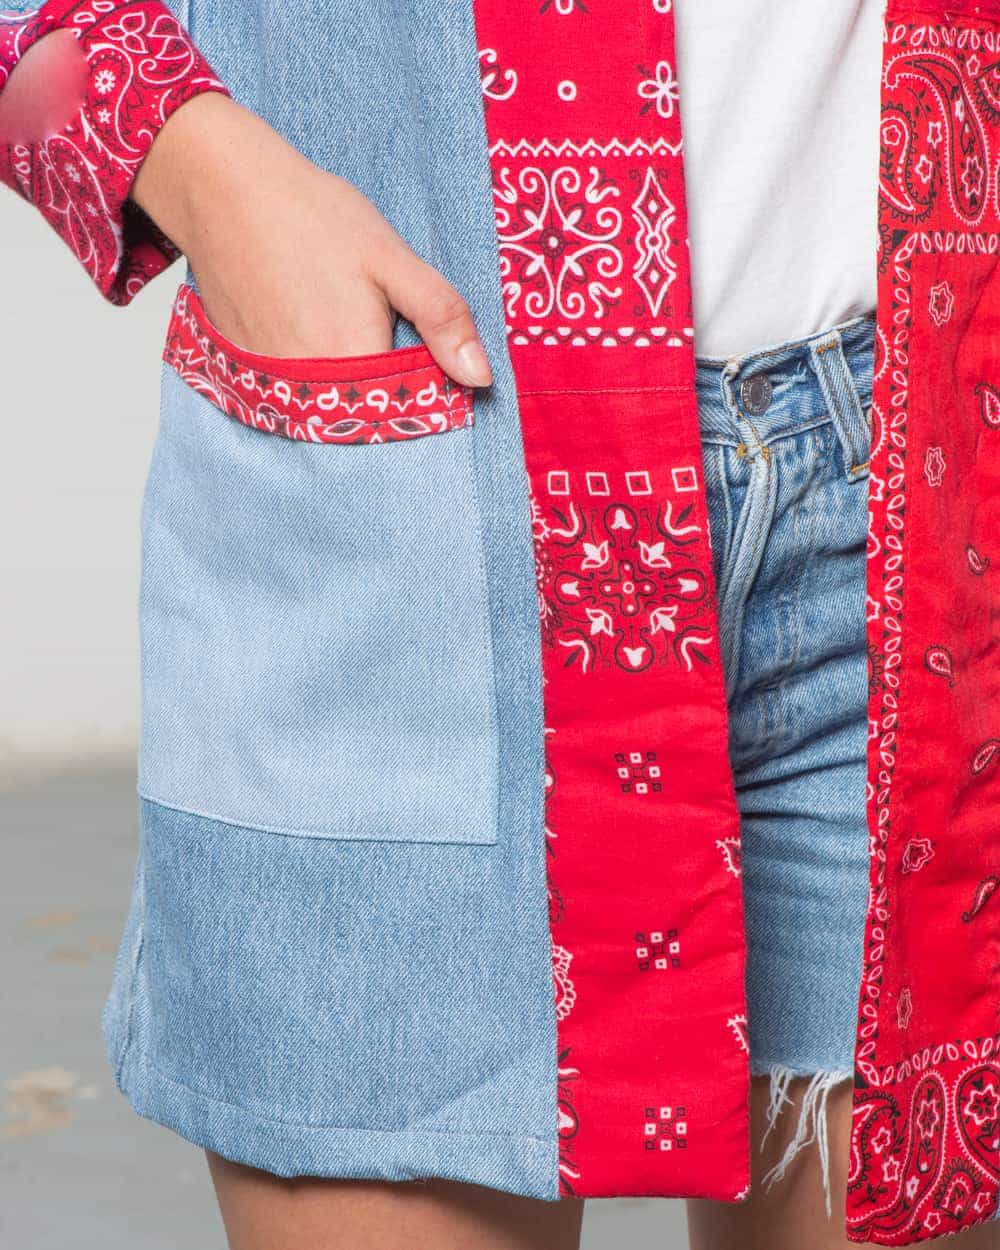 Overlord Upcycling Vintage | Noragi Light Vintage Denim • Patchwork Red Bandana